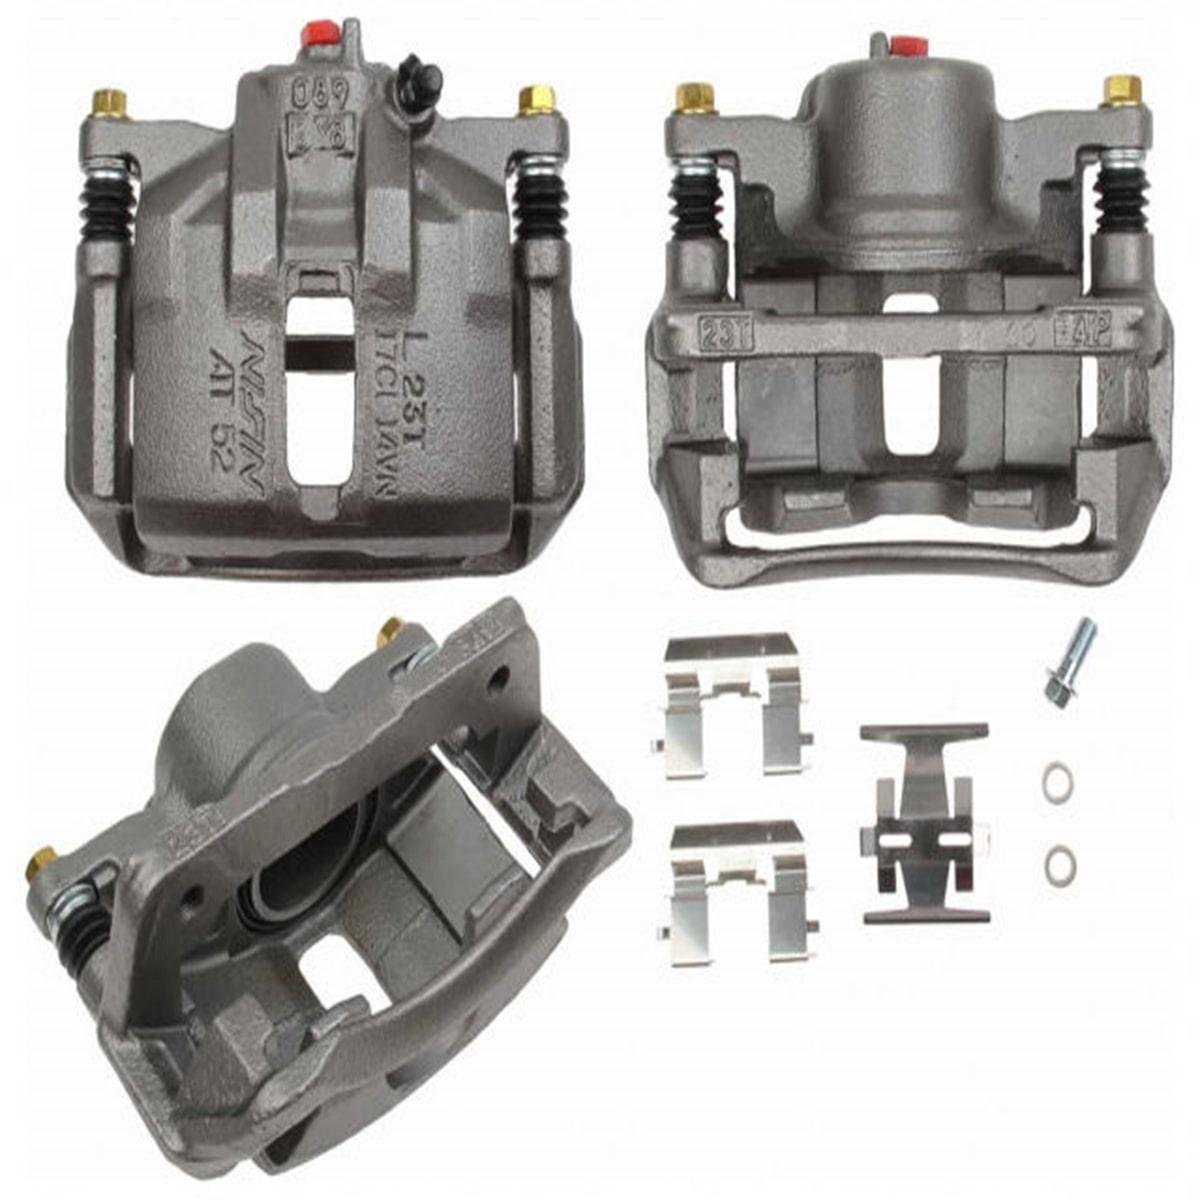 Brake Callipers and Parts